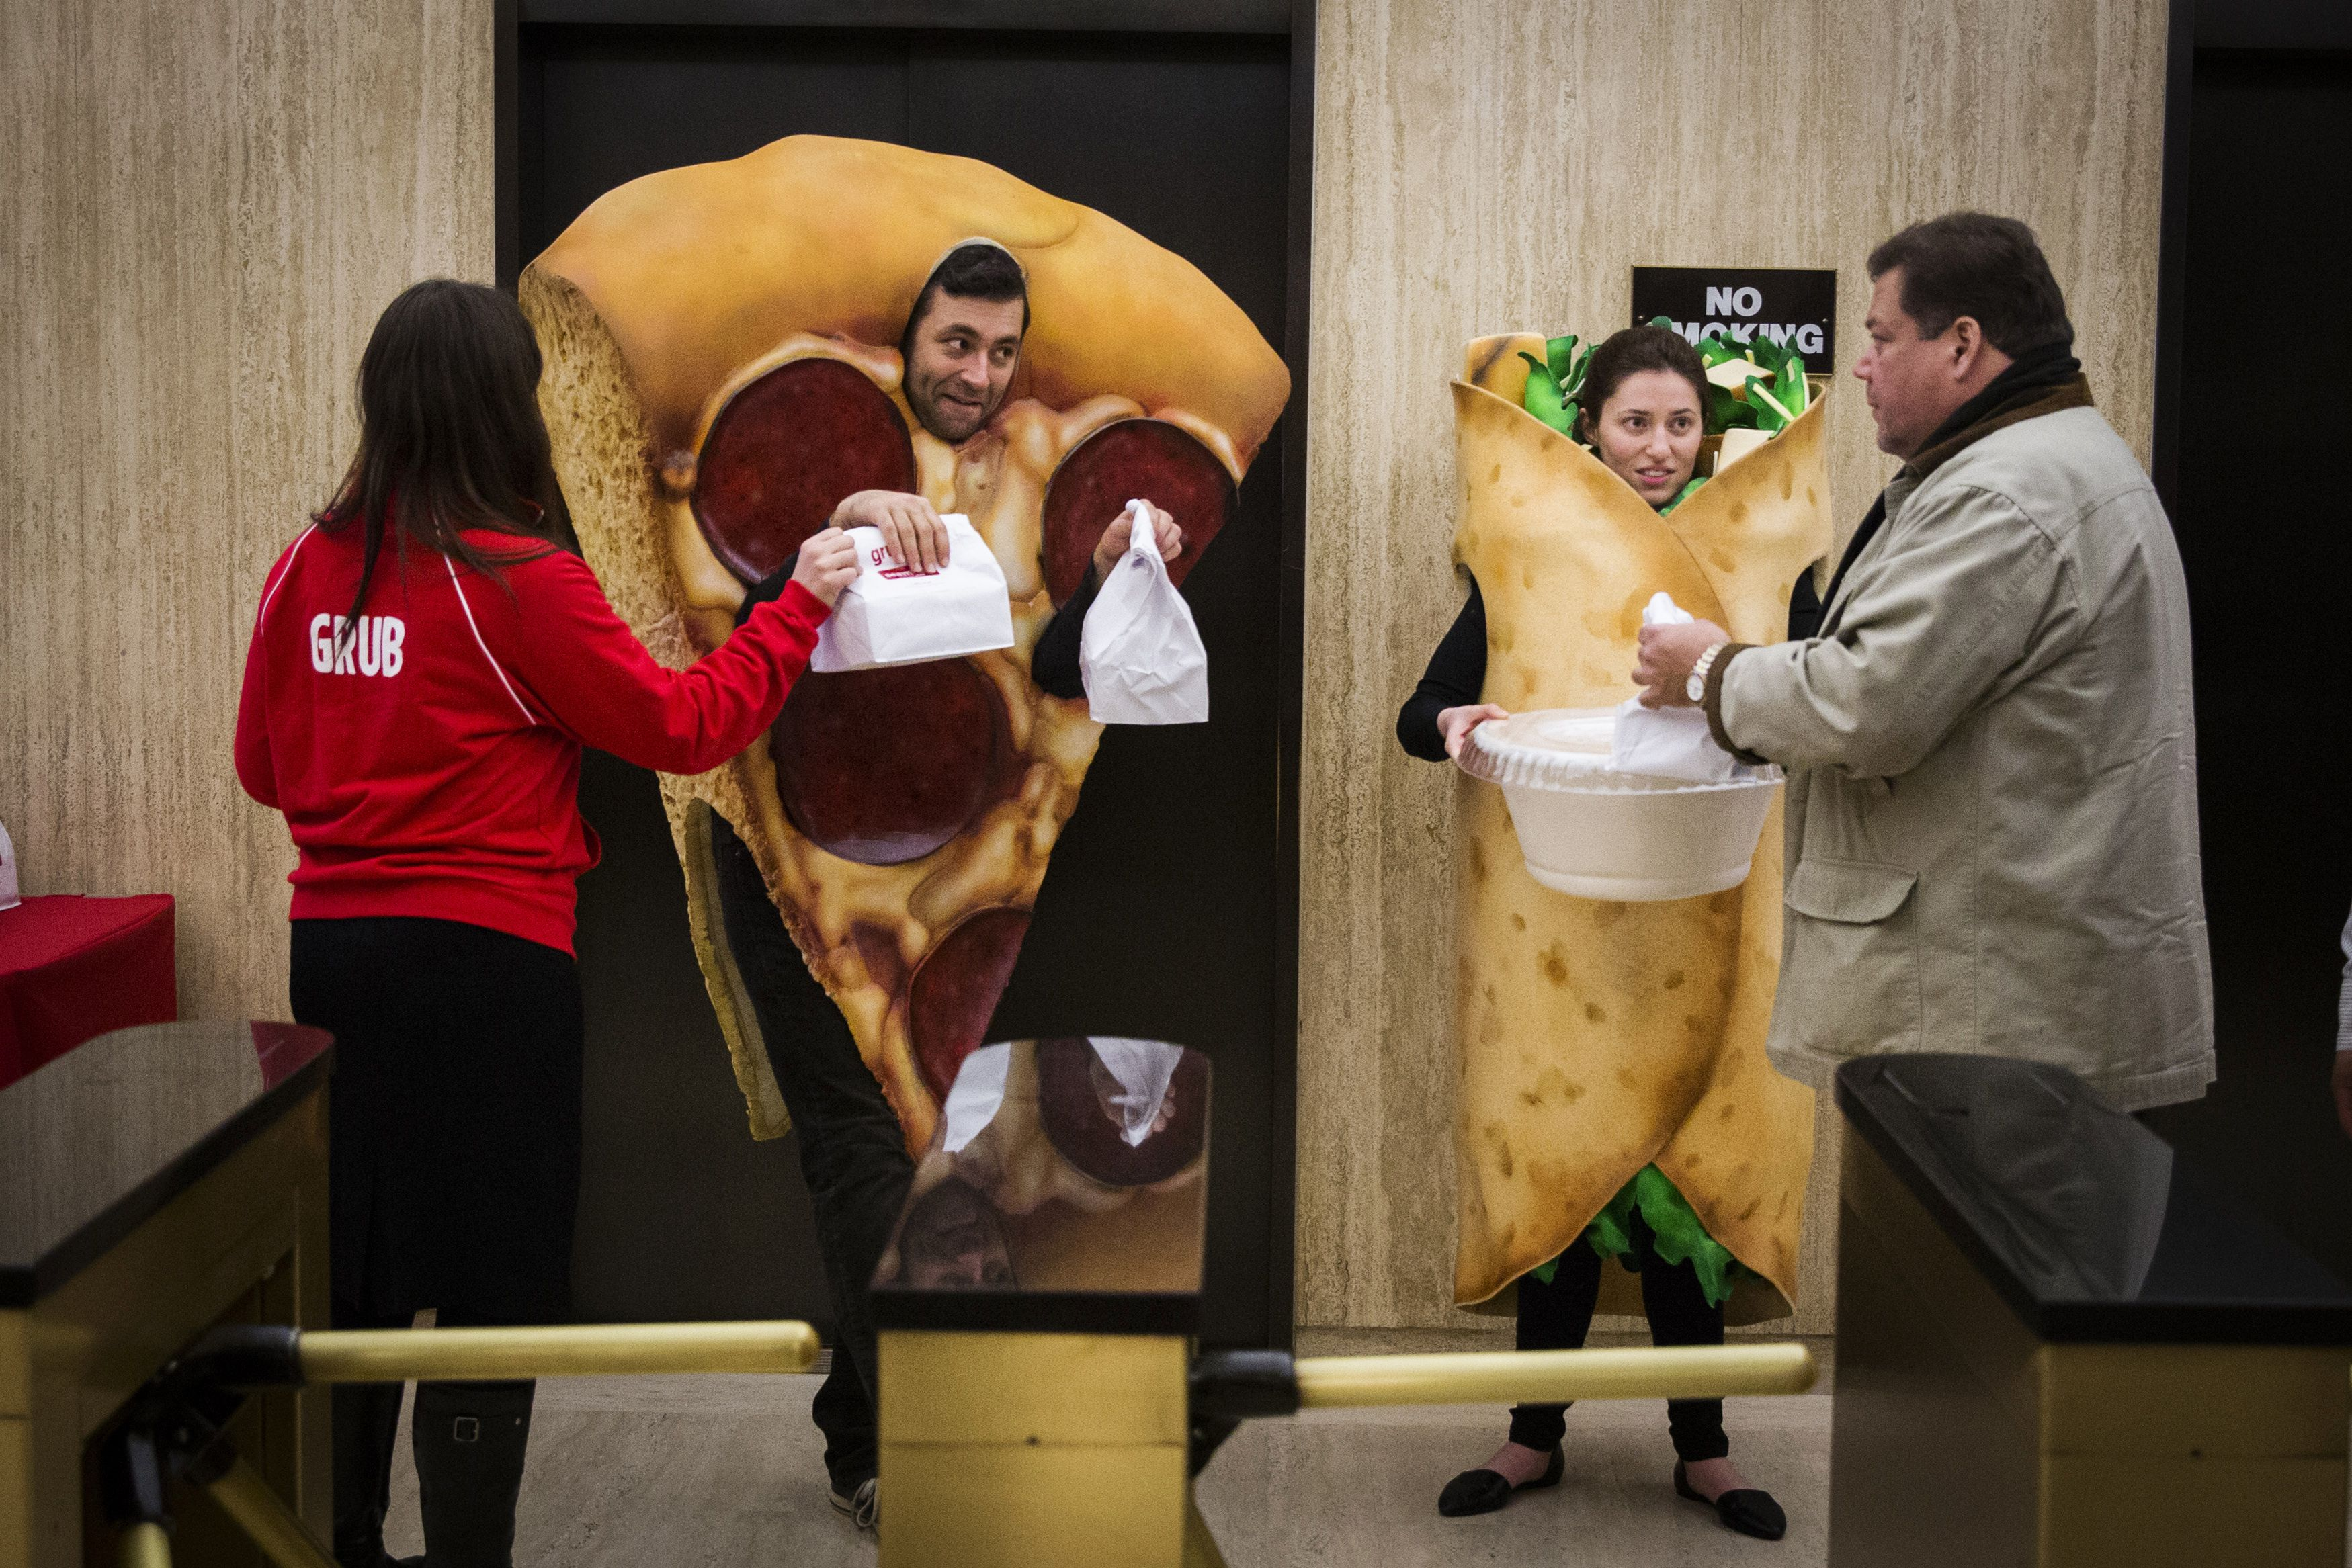 People dressed in food-themed costumes give away donuts to people headed to the floor of the New York Stock Exchange to celebrate the IPO of GrubHub, in New York April 4, 2014. Shares of GrubHub Inc, the biggest U.S. online food-delivery service, rose as much as 57 percent in its market debut as investors scrambled for a piece of the fast-growing consumer internet company.  REUTERS/Lucas Jackson (UNITED STATES - Tags: BUSINESS FOOD) - RTR3JYXC